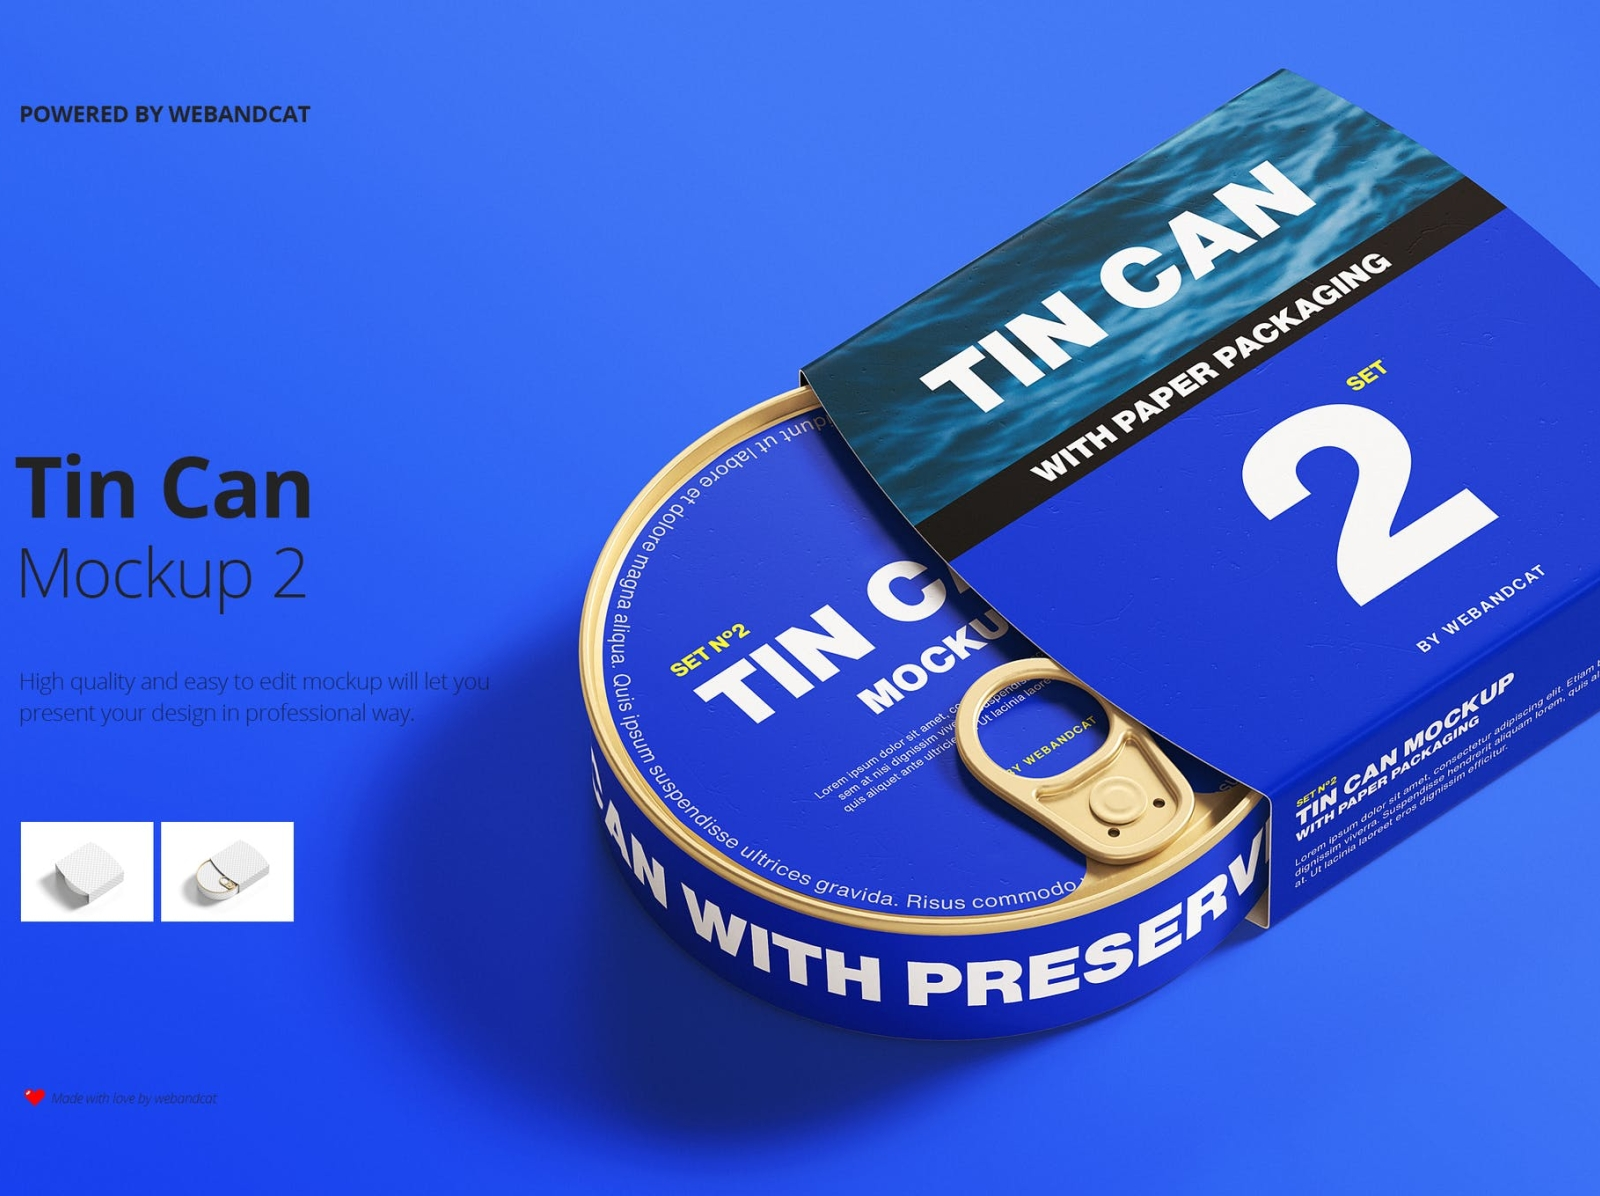 Tin Can Mockup with Paper Packaging can mockup packaging package design packaging design mockup paper packaging tin can typography ux vector ui 3d logo illustration graphic design design branding